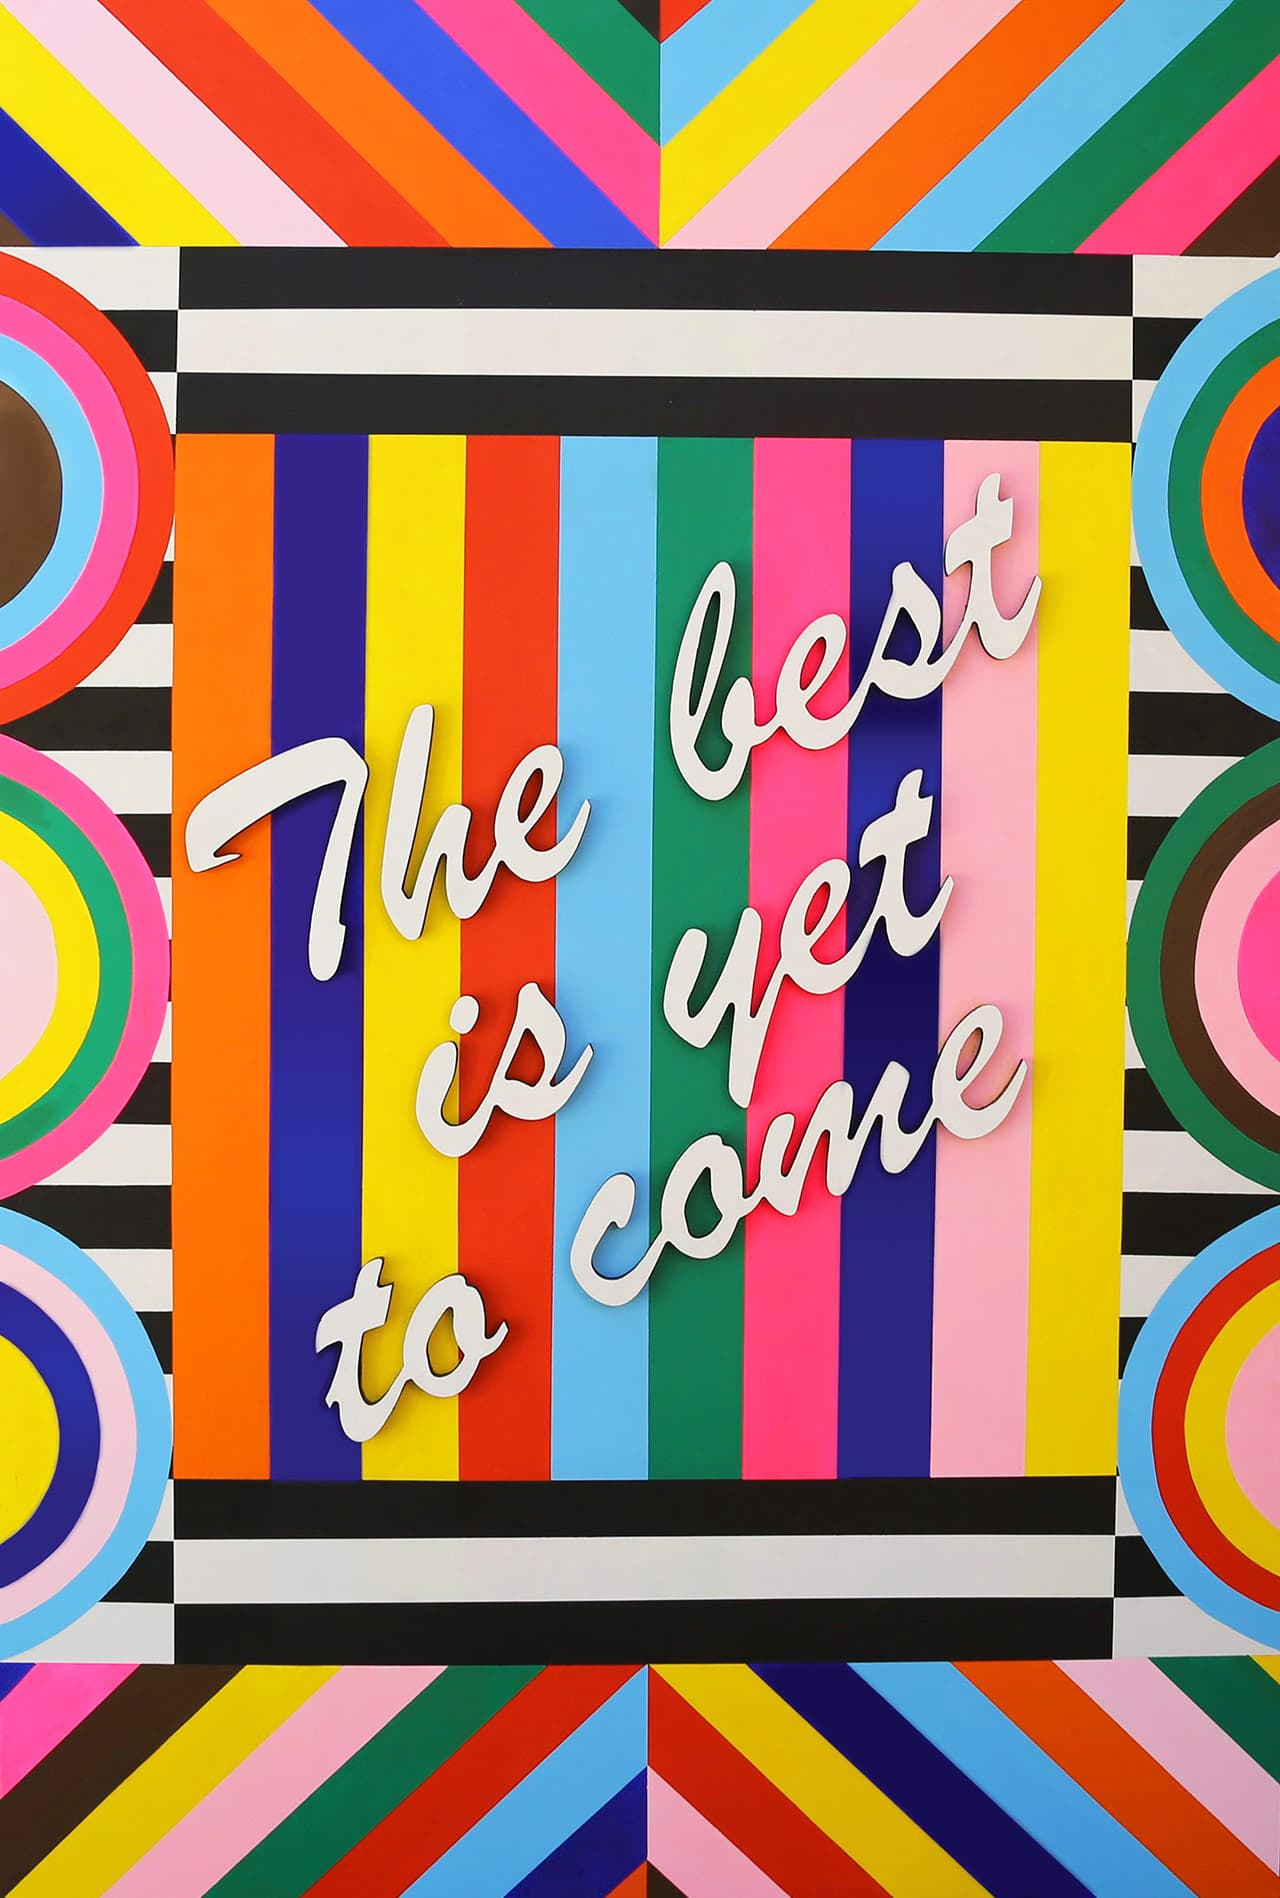 The best is yet to come, 2015